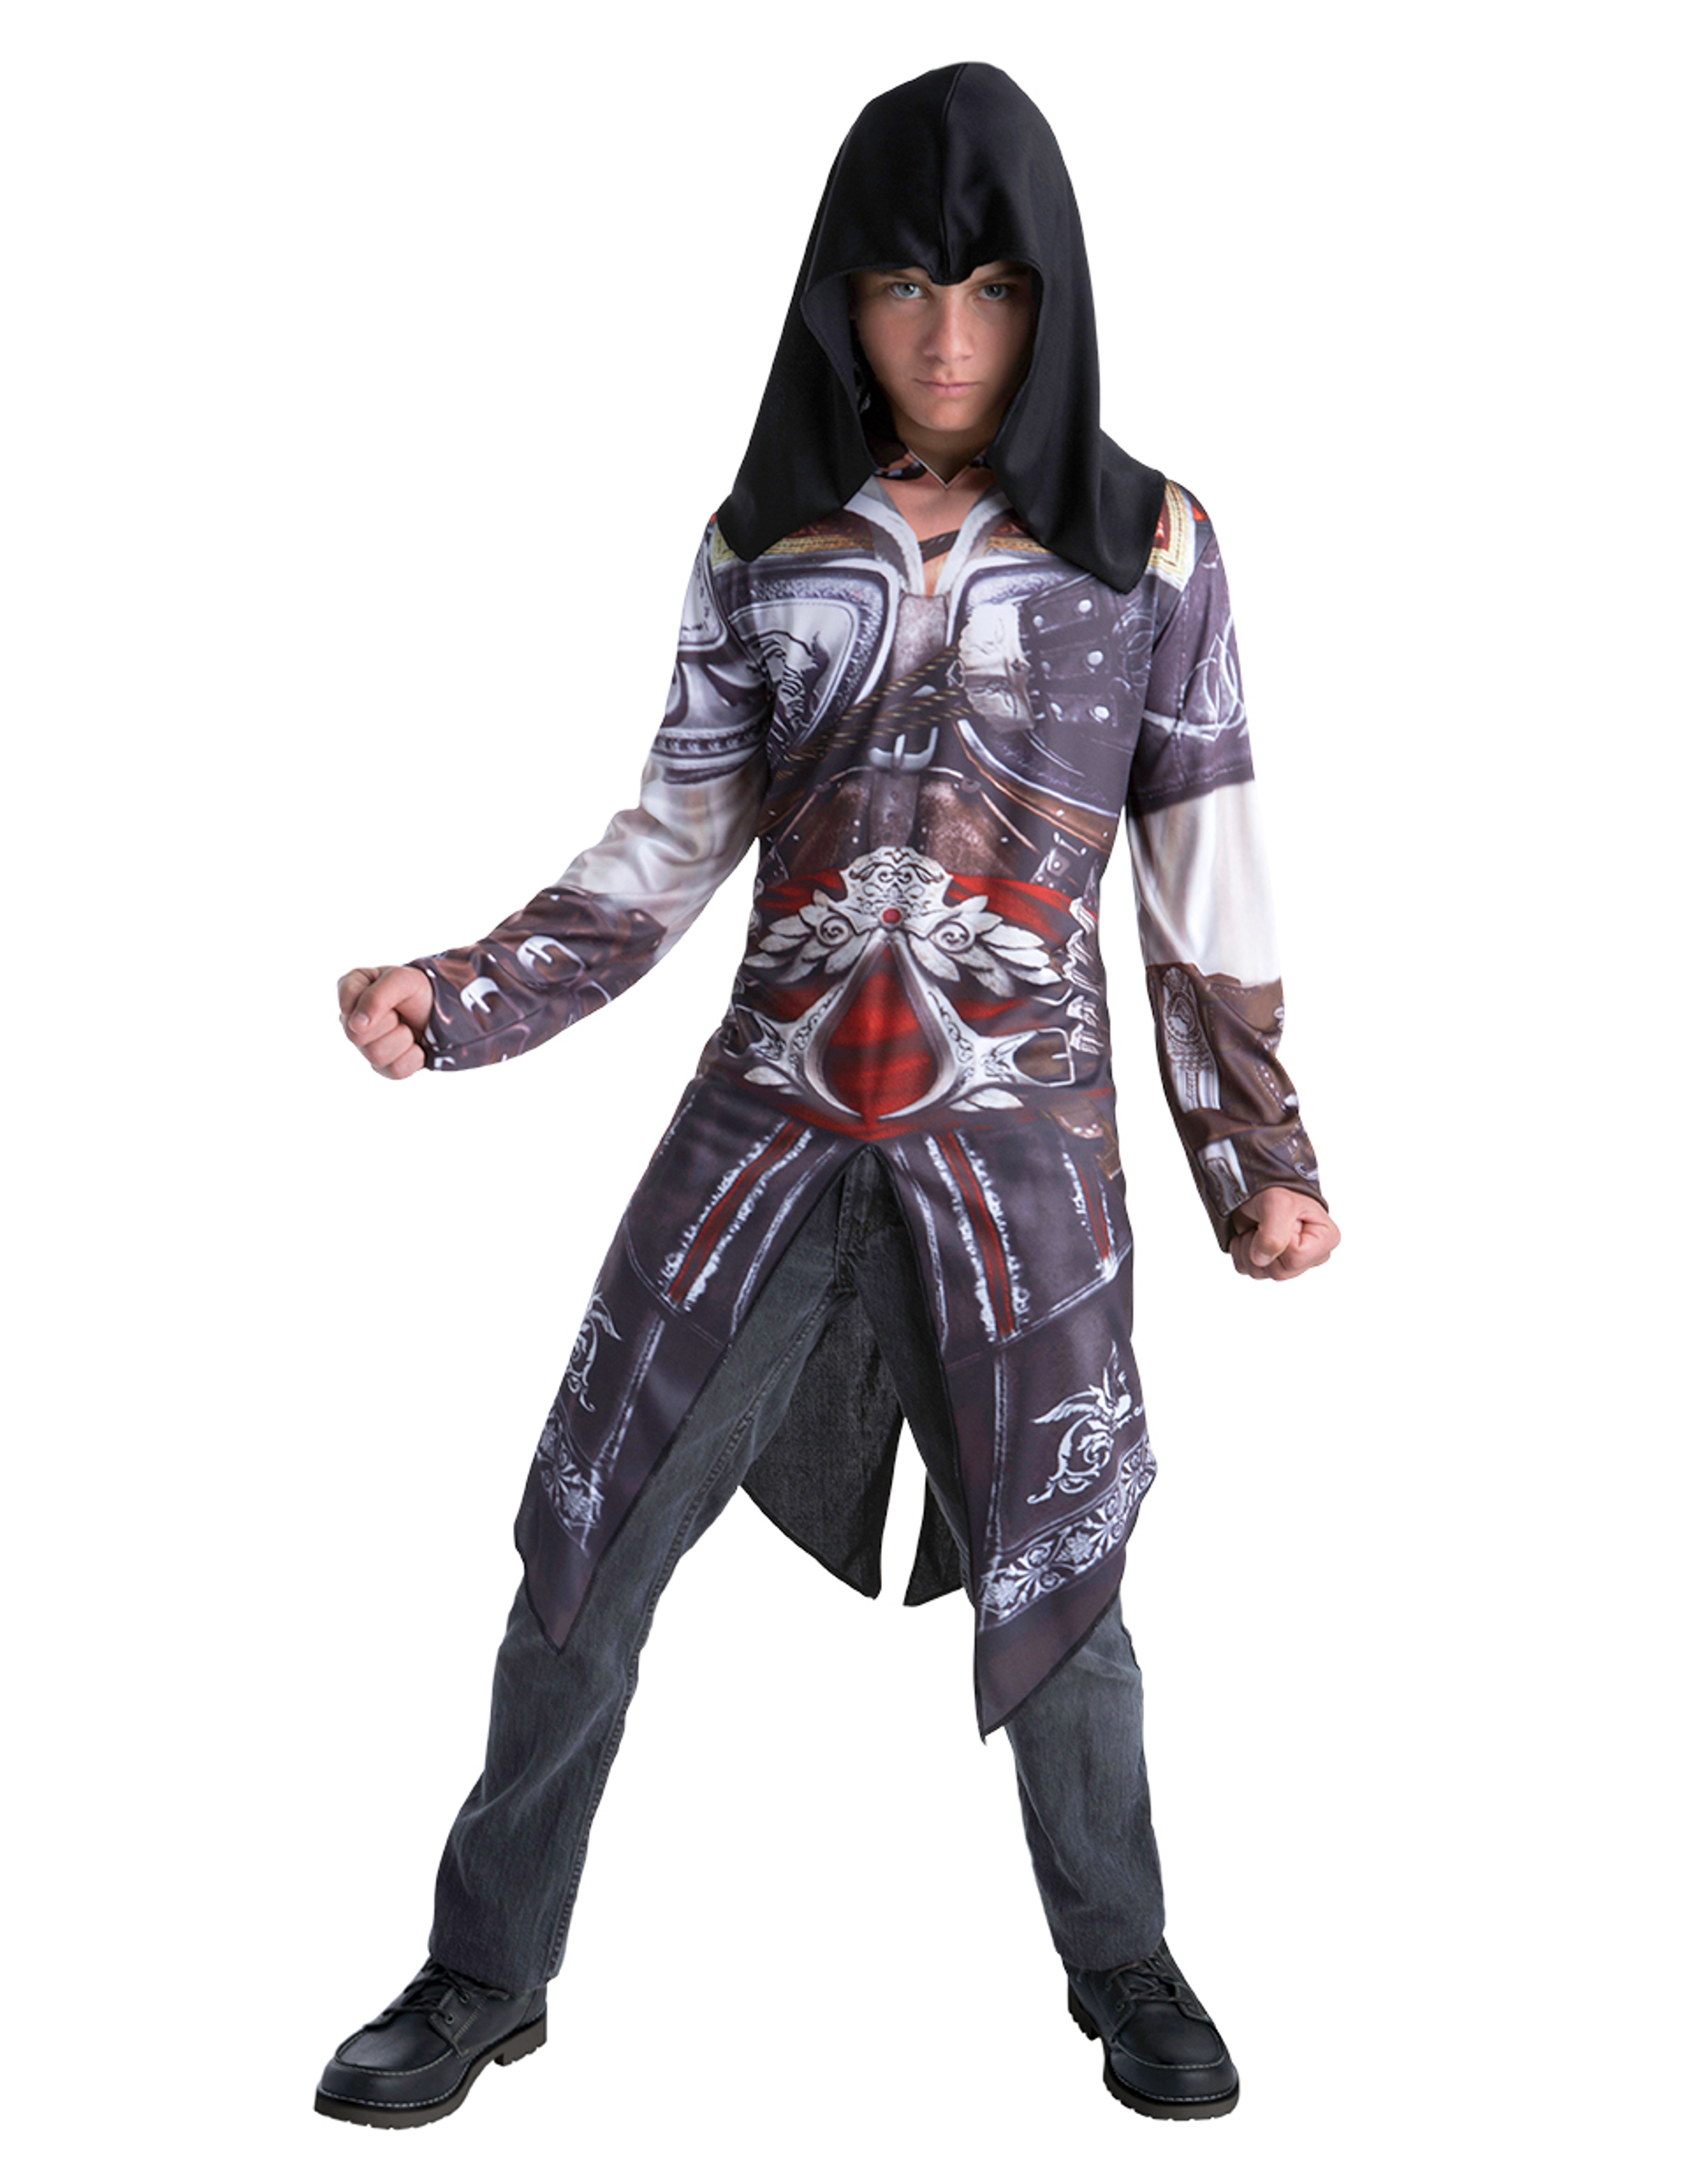 Disfraz Ezio Assassin s creed™ Sublimation Adolescente  Disfraces ... cb2030d0d107